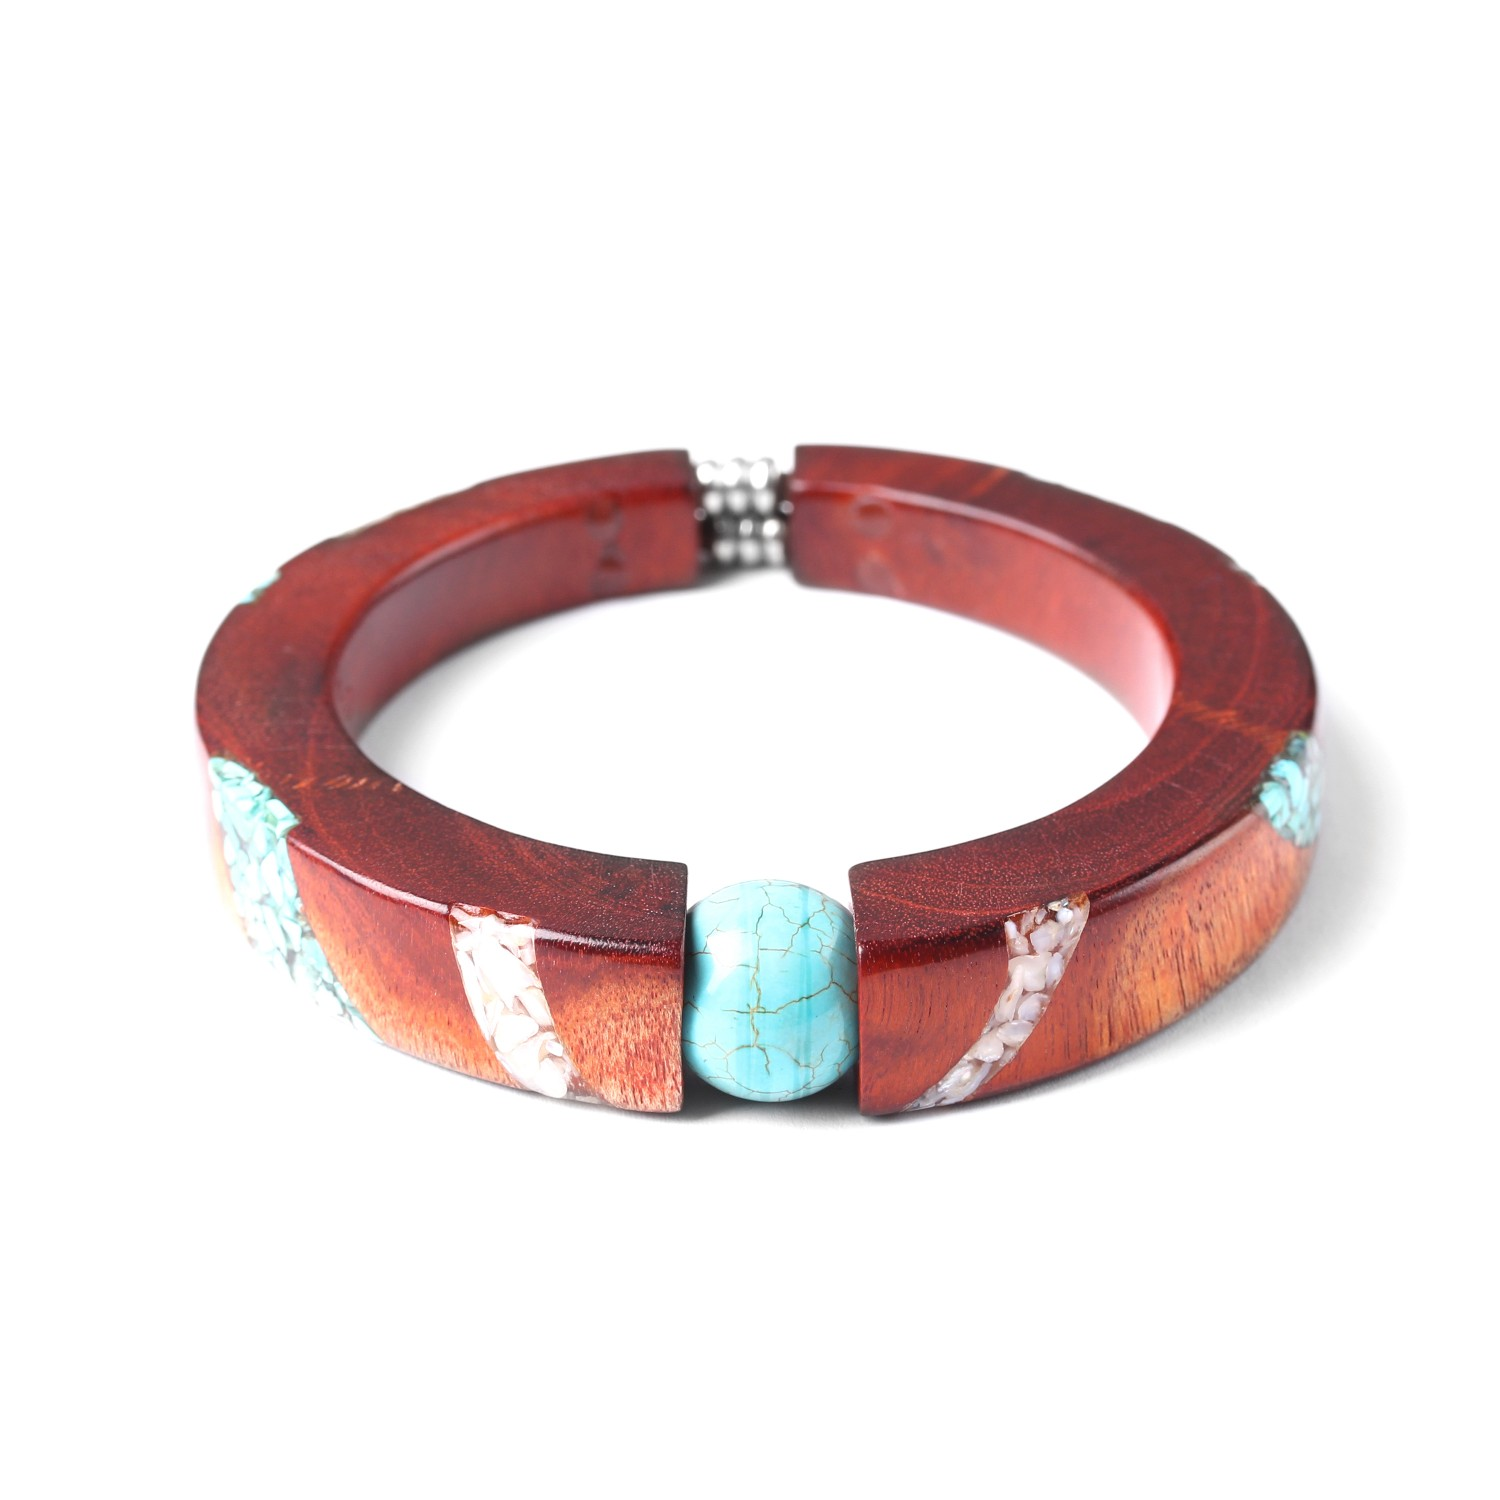 GOLDSWORTHY bracelet bangle